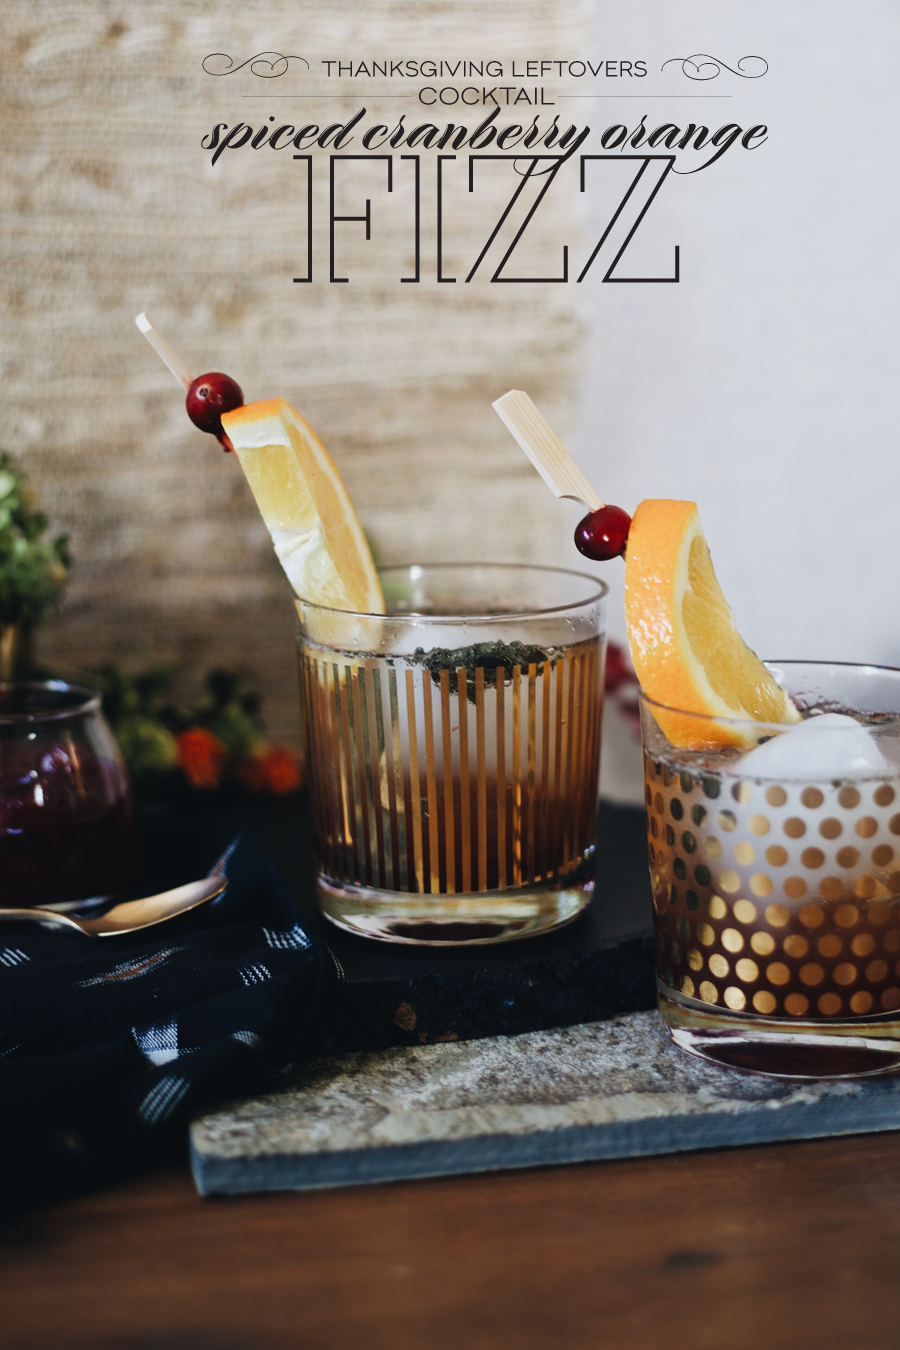 Spiced Cranberry Orange Fizz Cocktail | Dine XDesign